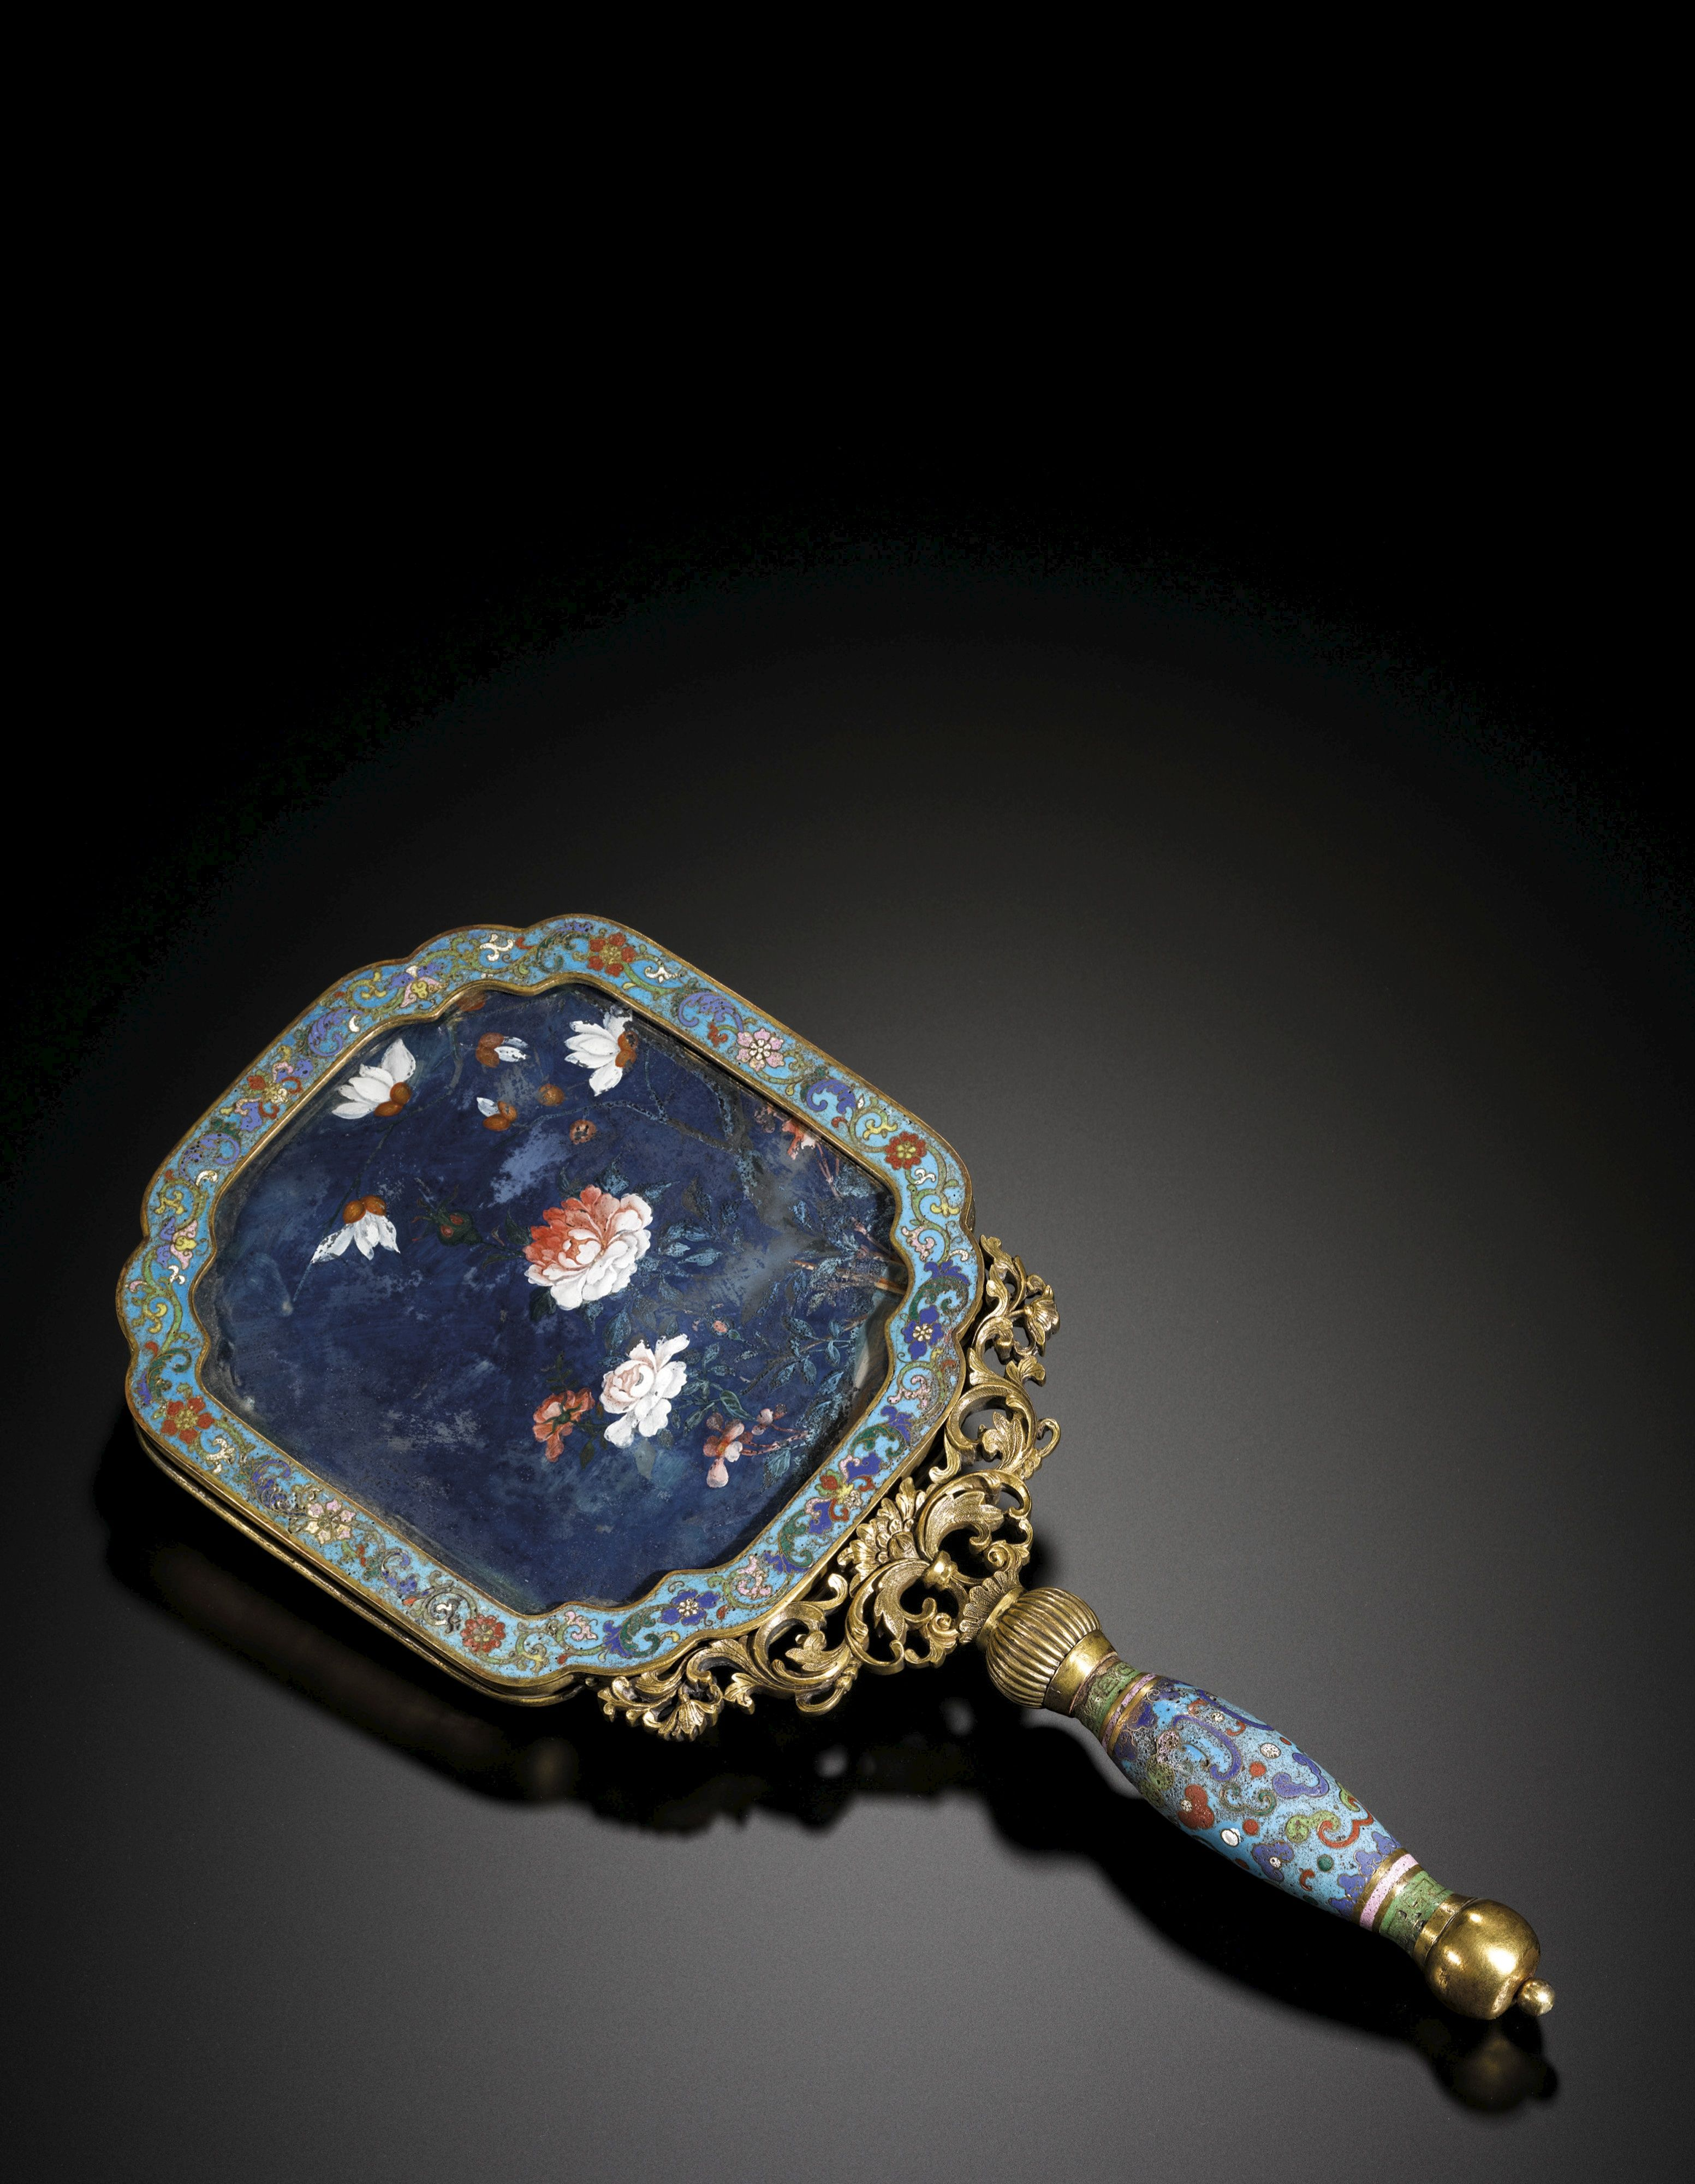 A CLOISONNÉ MIRROR WITH A REVERSE-GLASS PAINTING<br>QING DYNASTY, 18TH CENTURY   Lot   Sotheby's